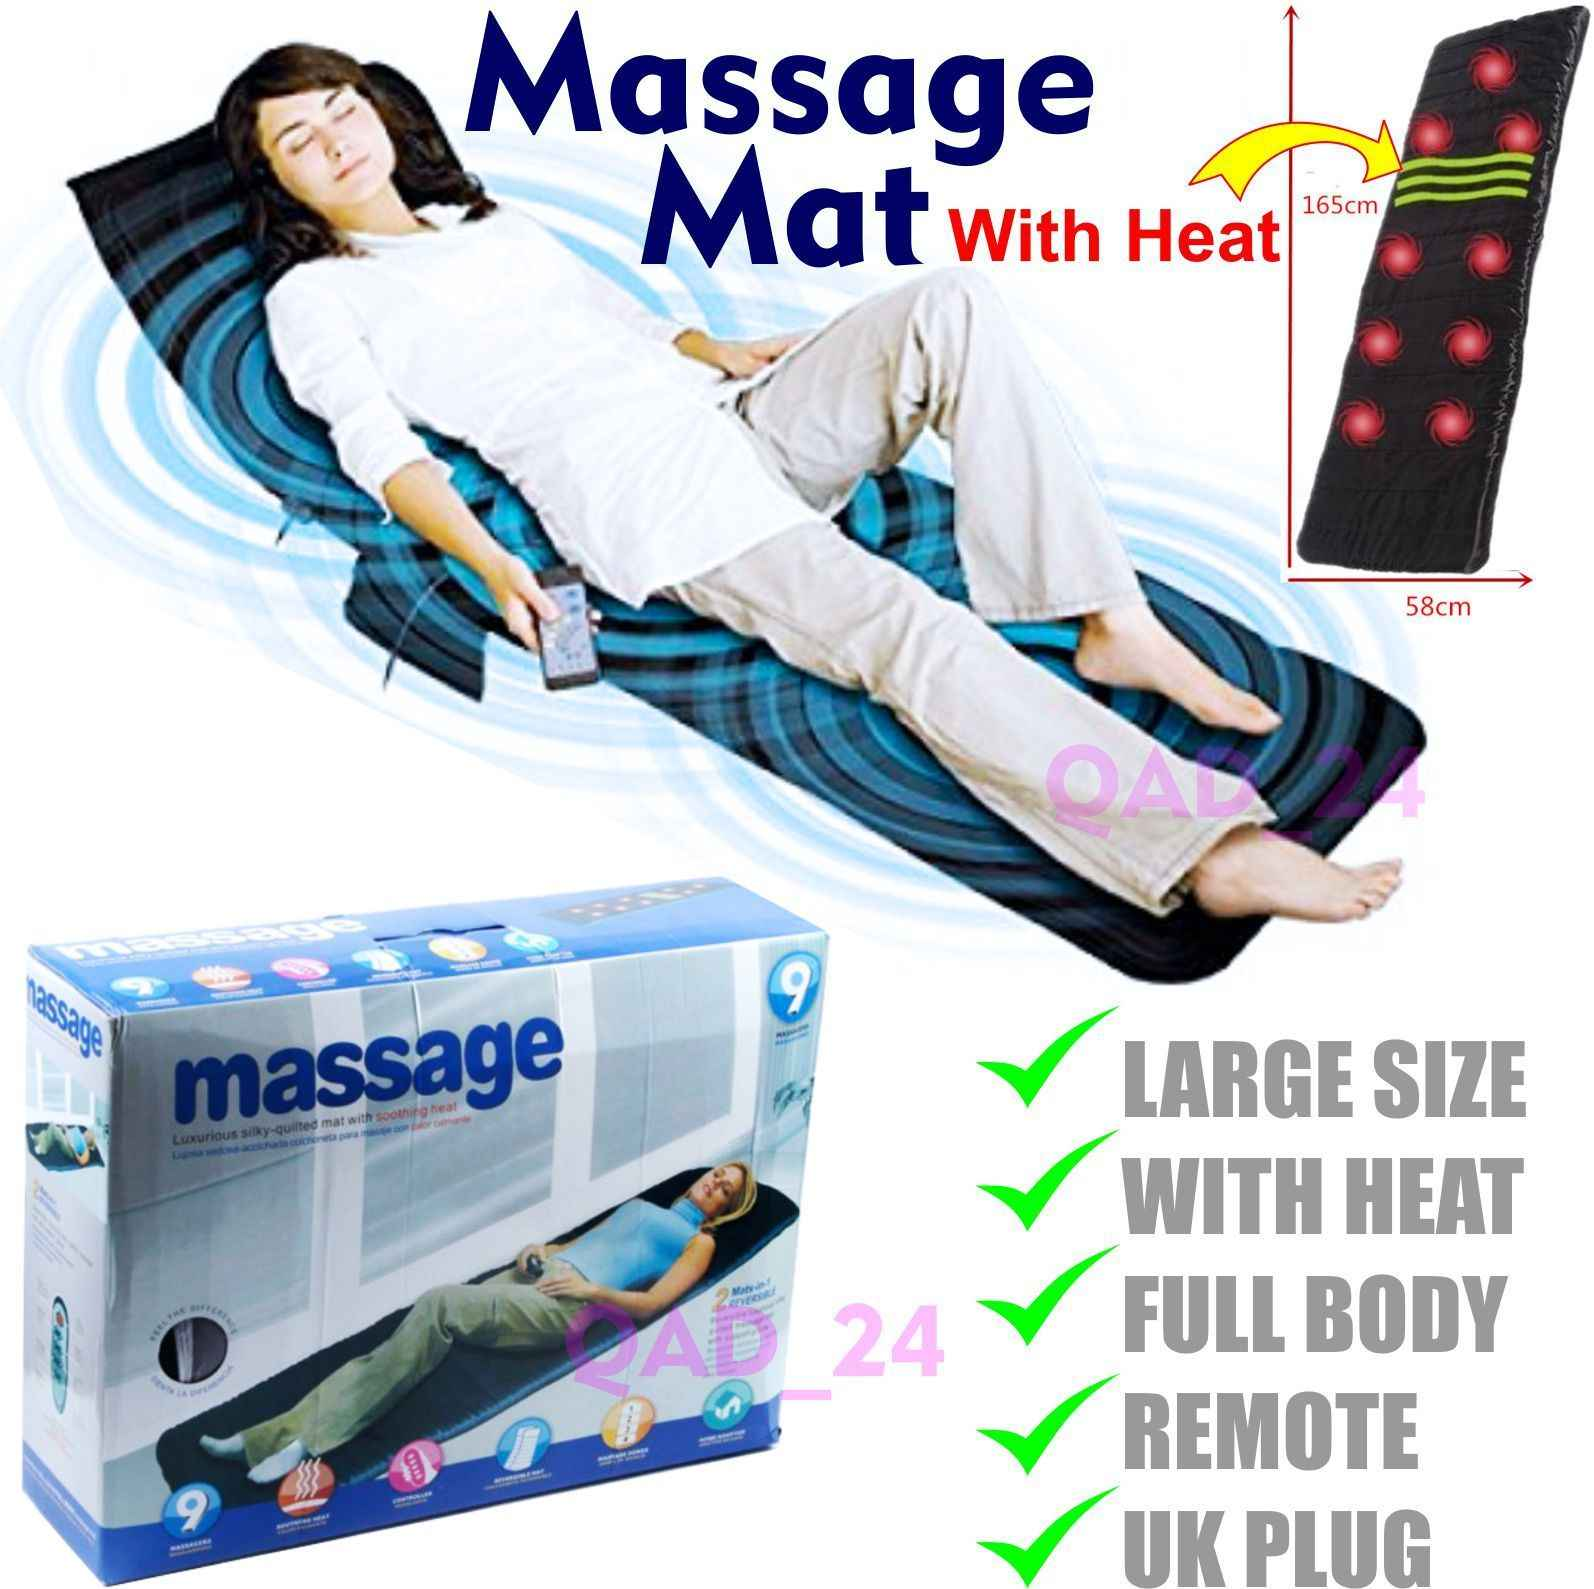 Electric Vibrator Massage Mat Mattress Full Body Heated Back Neck Massager Remote Control Cushion Sofa Bed Waist Cushion Mat